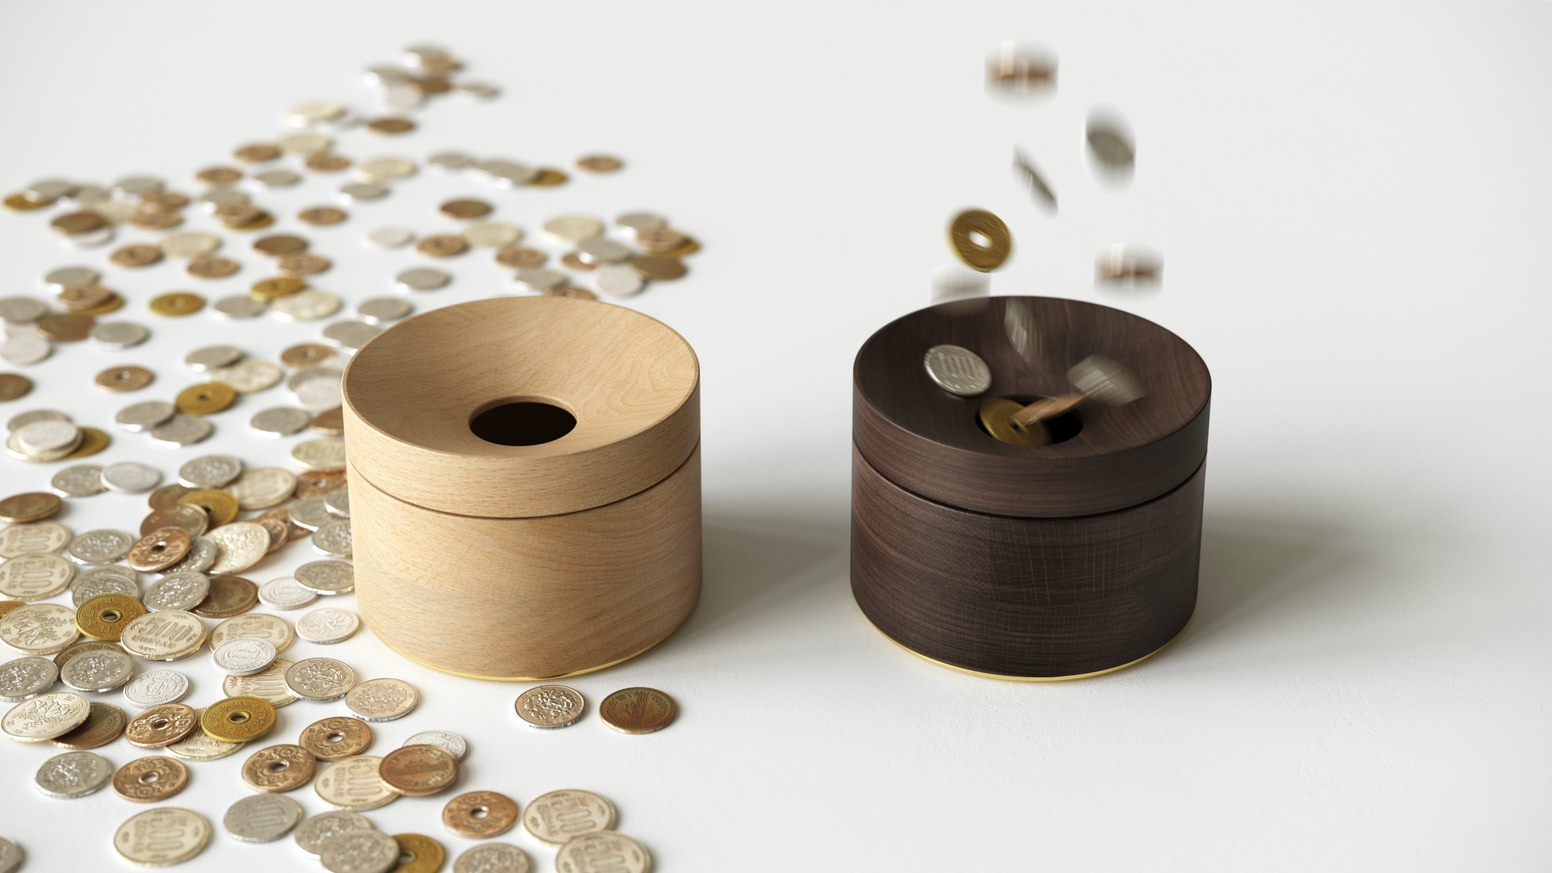 Help you organize coins in the most effortless way. Floating Magnetized lid creates the most playable and addicting open experience!